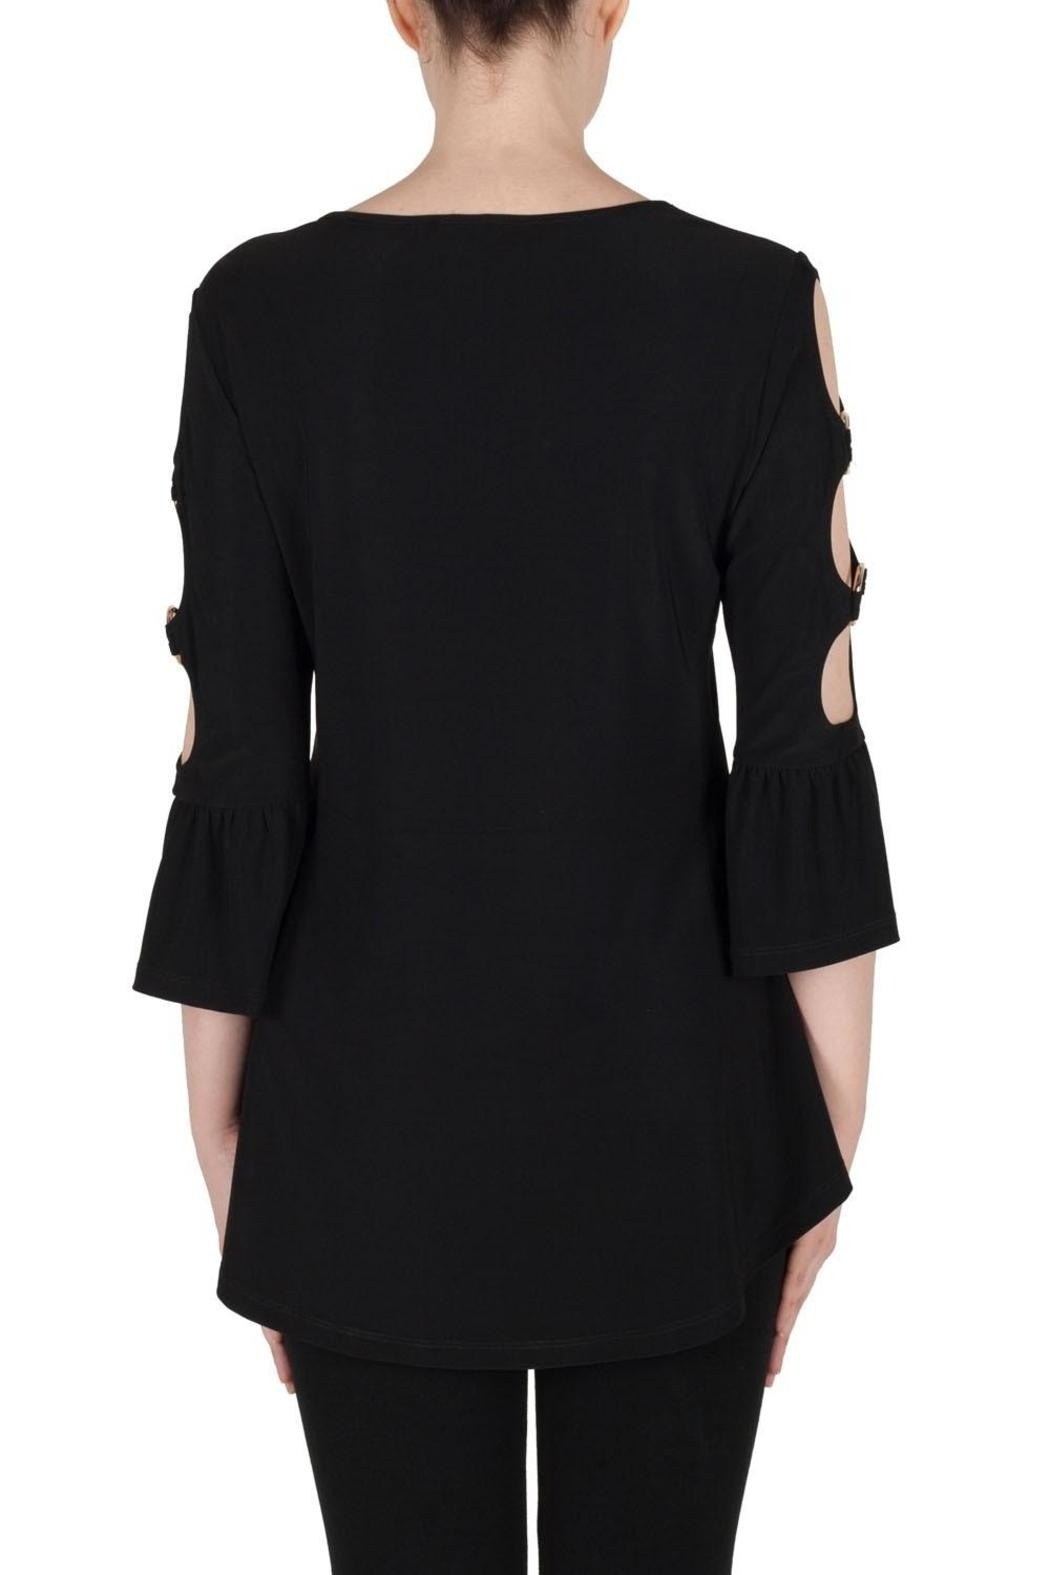 Joseph Ribkoff Cut Out Sleeve - Side Cropped Image